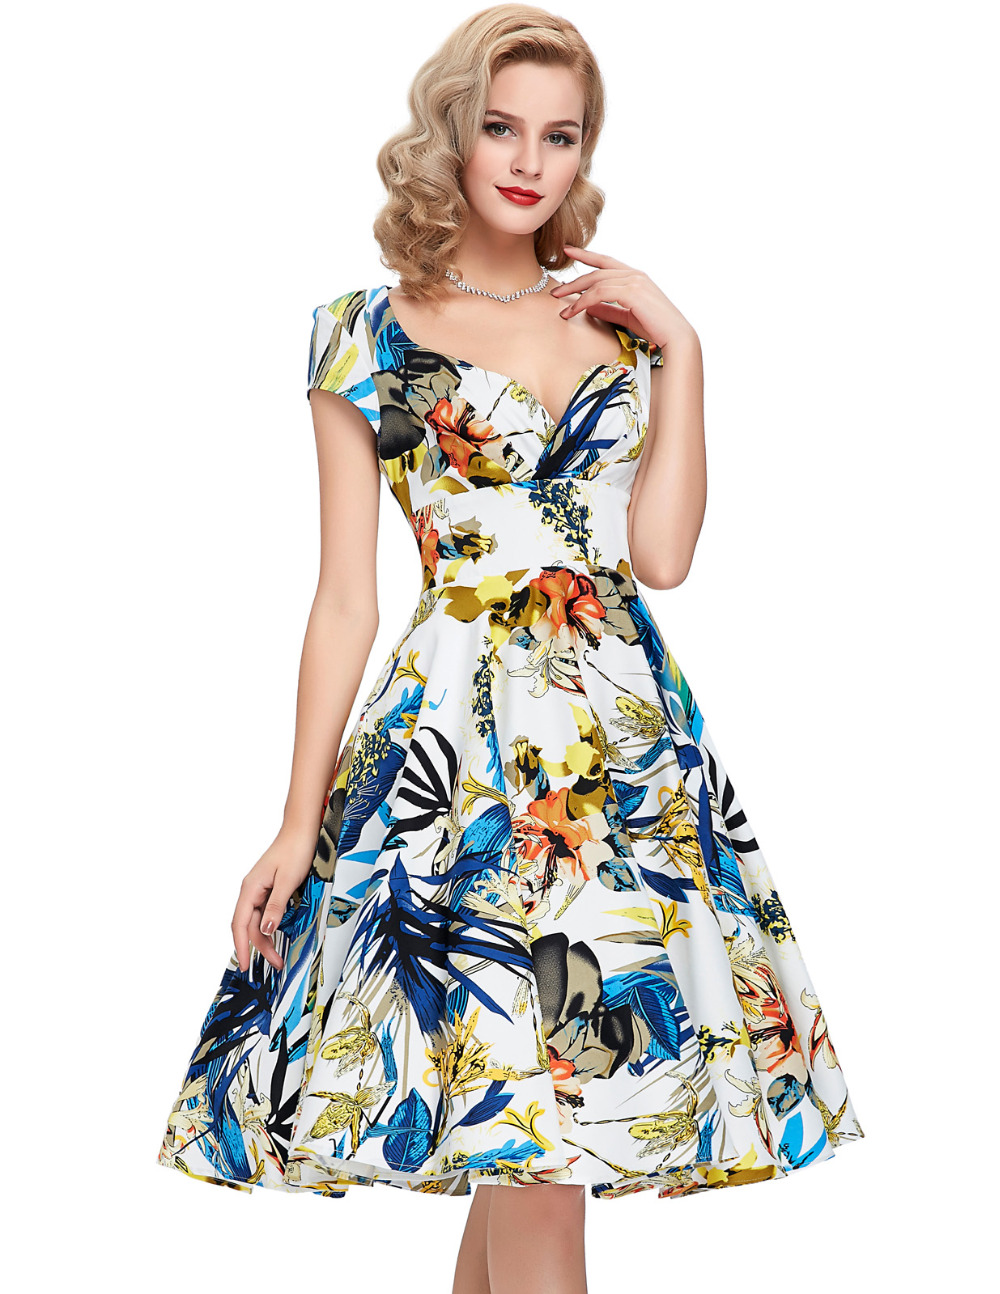 50s style summer dresses for sale